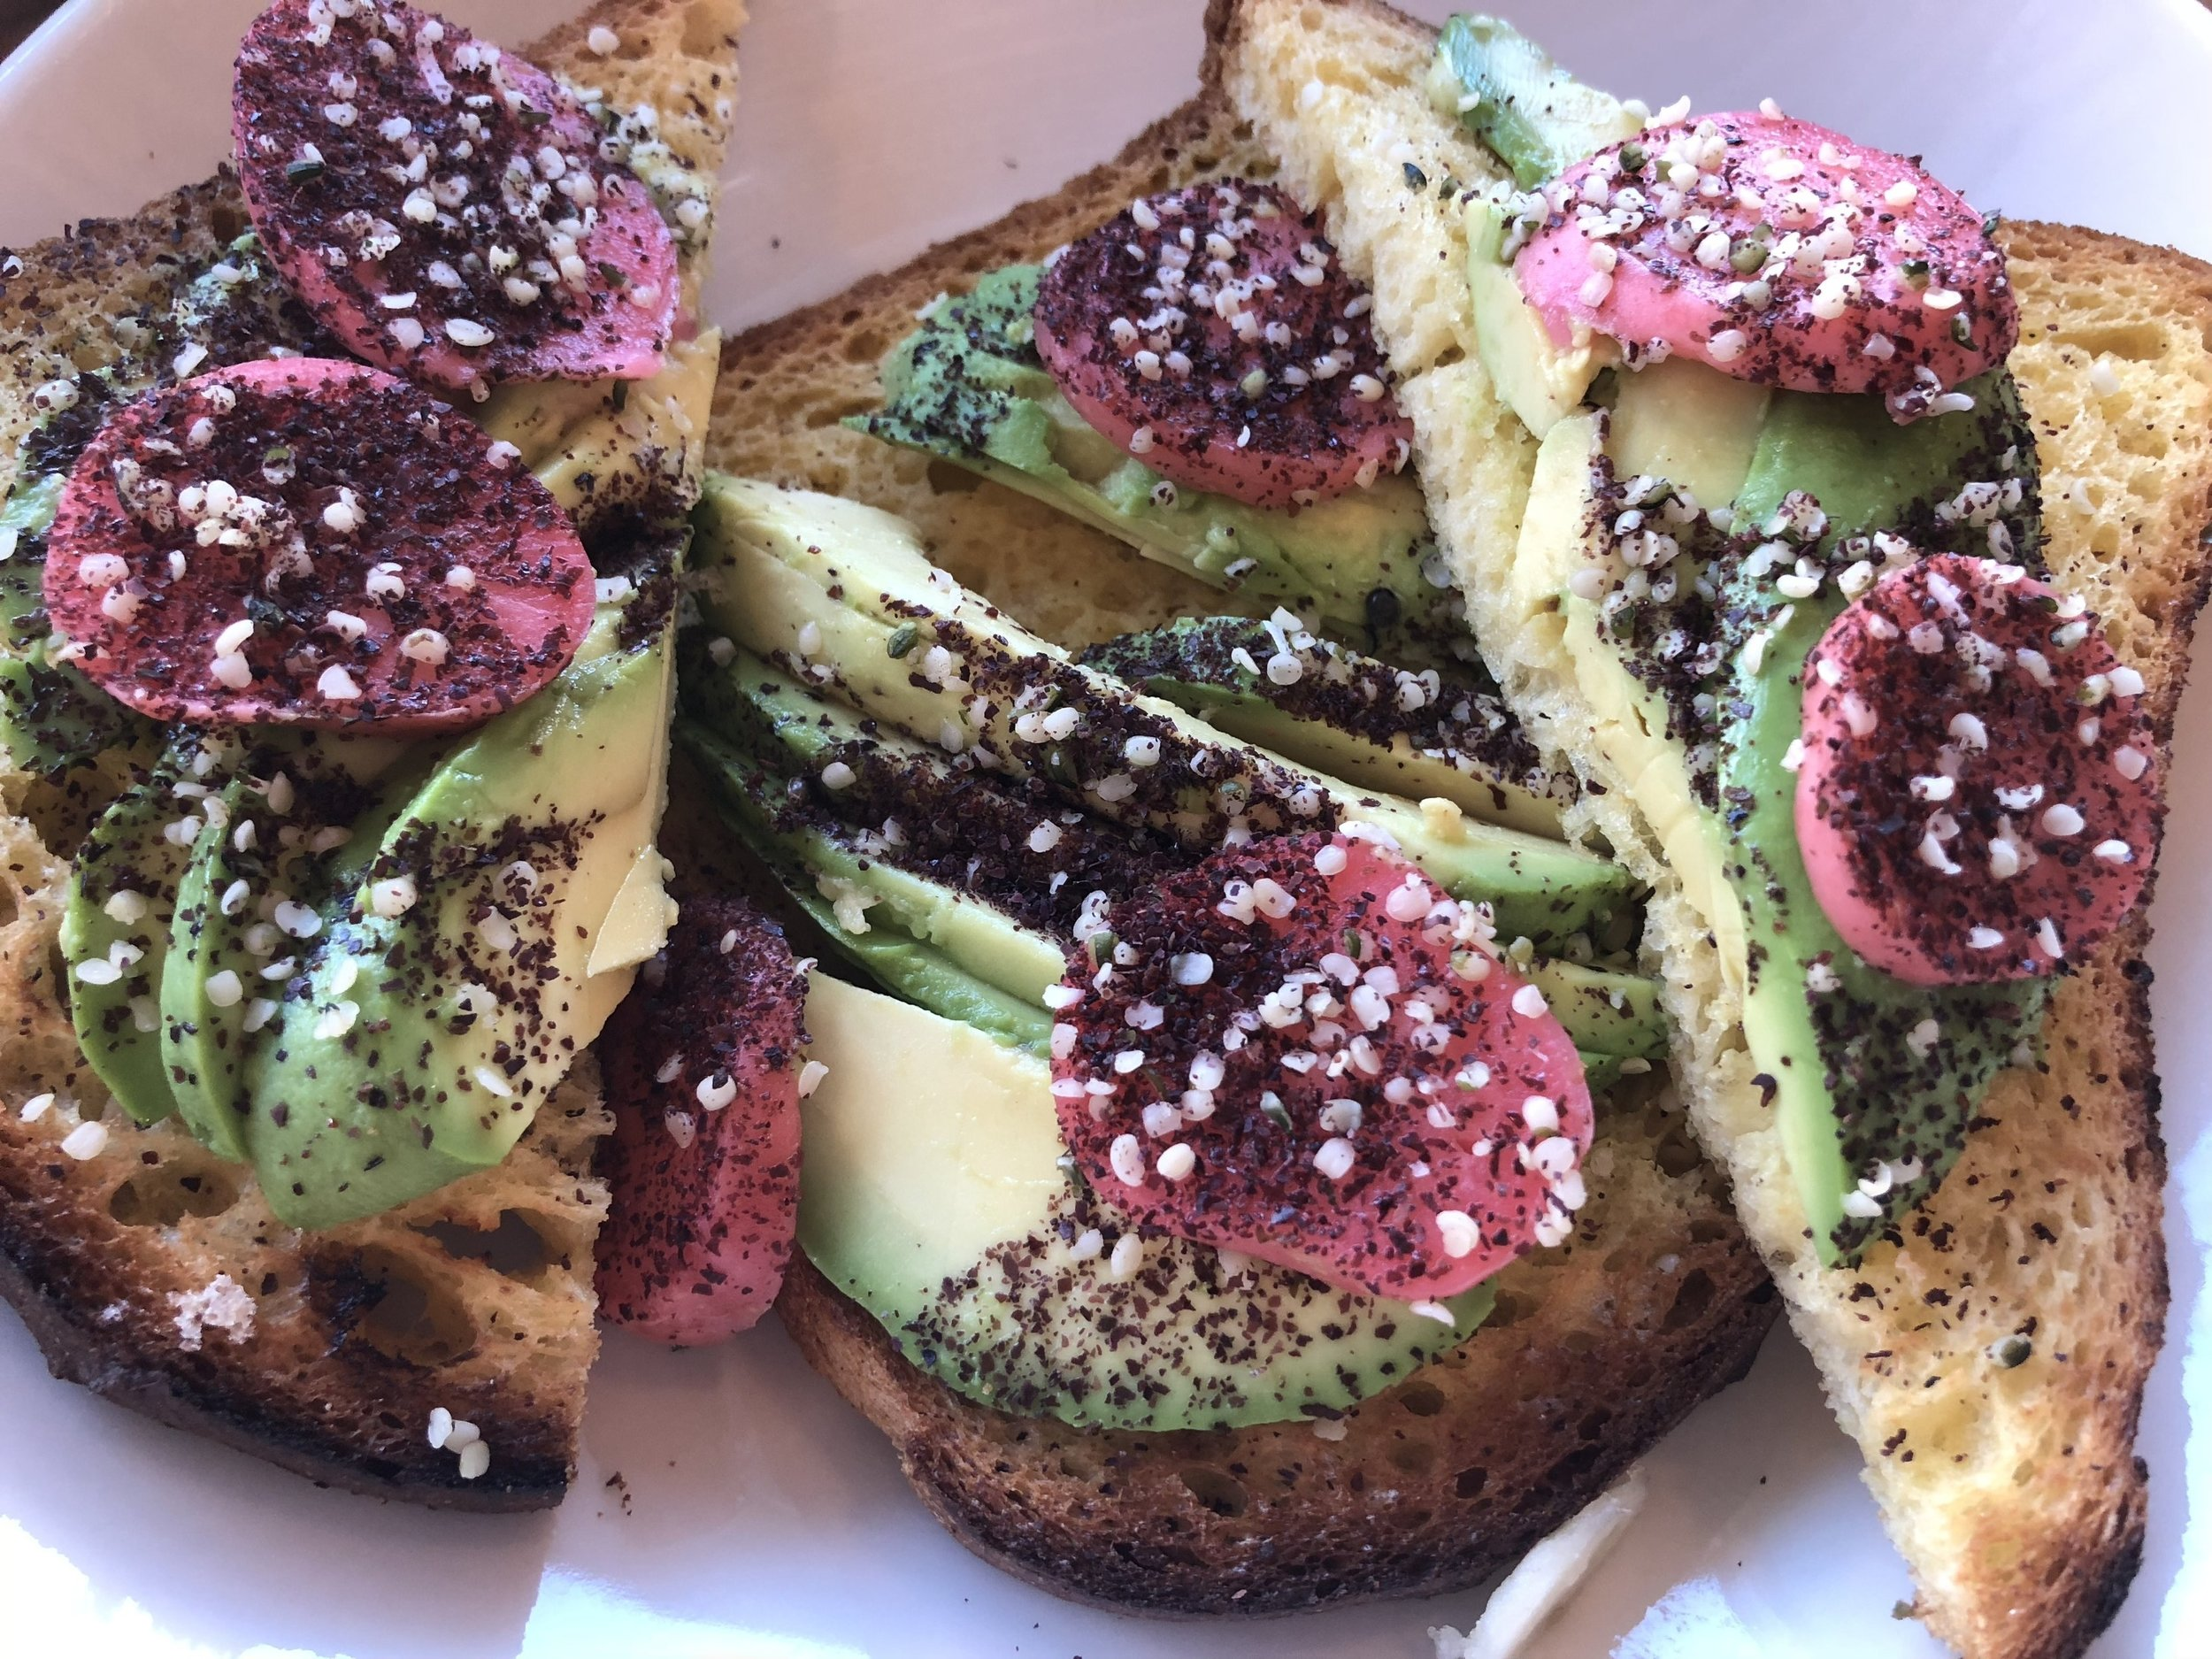 Gluten Free Avocado Toast  The pickled radishes were a great touch and looked beautiful